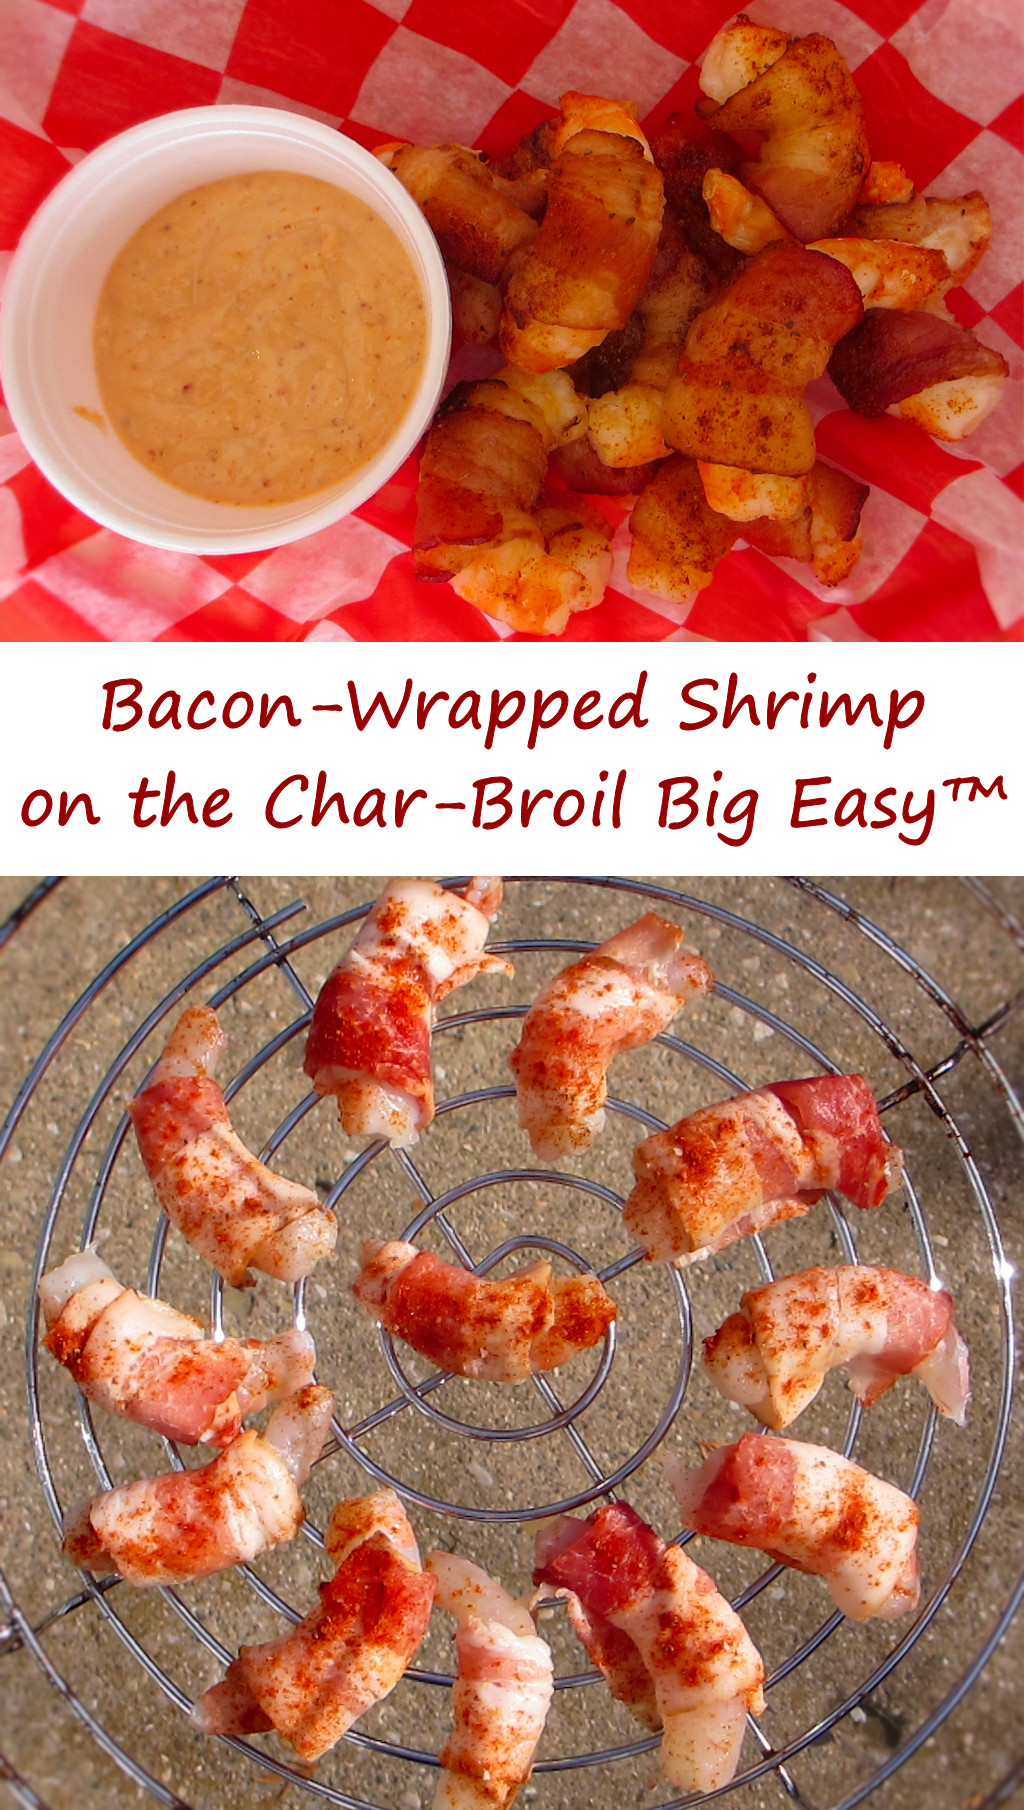 Bacon-Wrapped Shrimp on the Char-Broil Big Easy